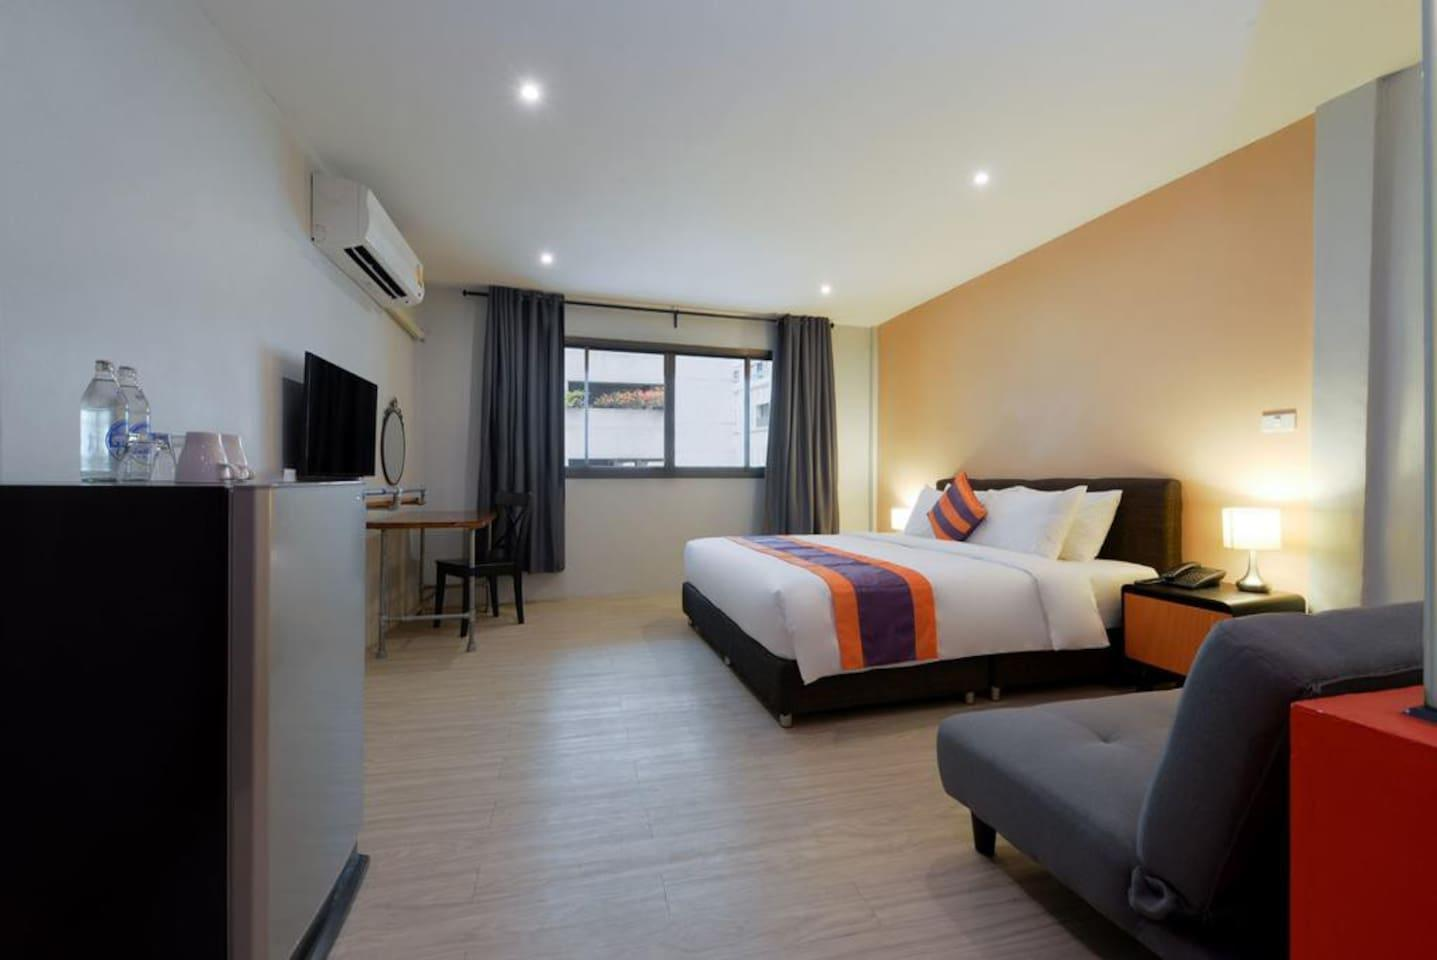 Studio 1.7 Km. From BTS And Emporium Shopping Mall